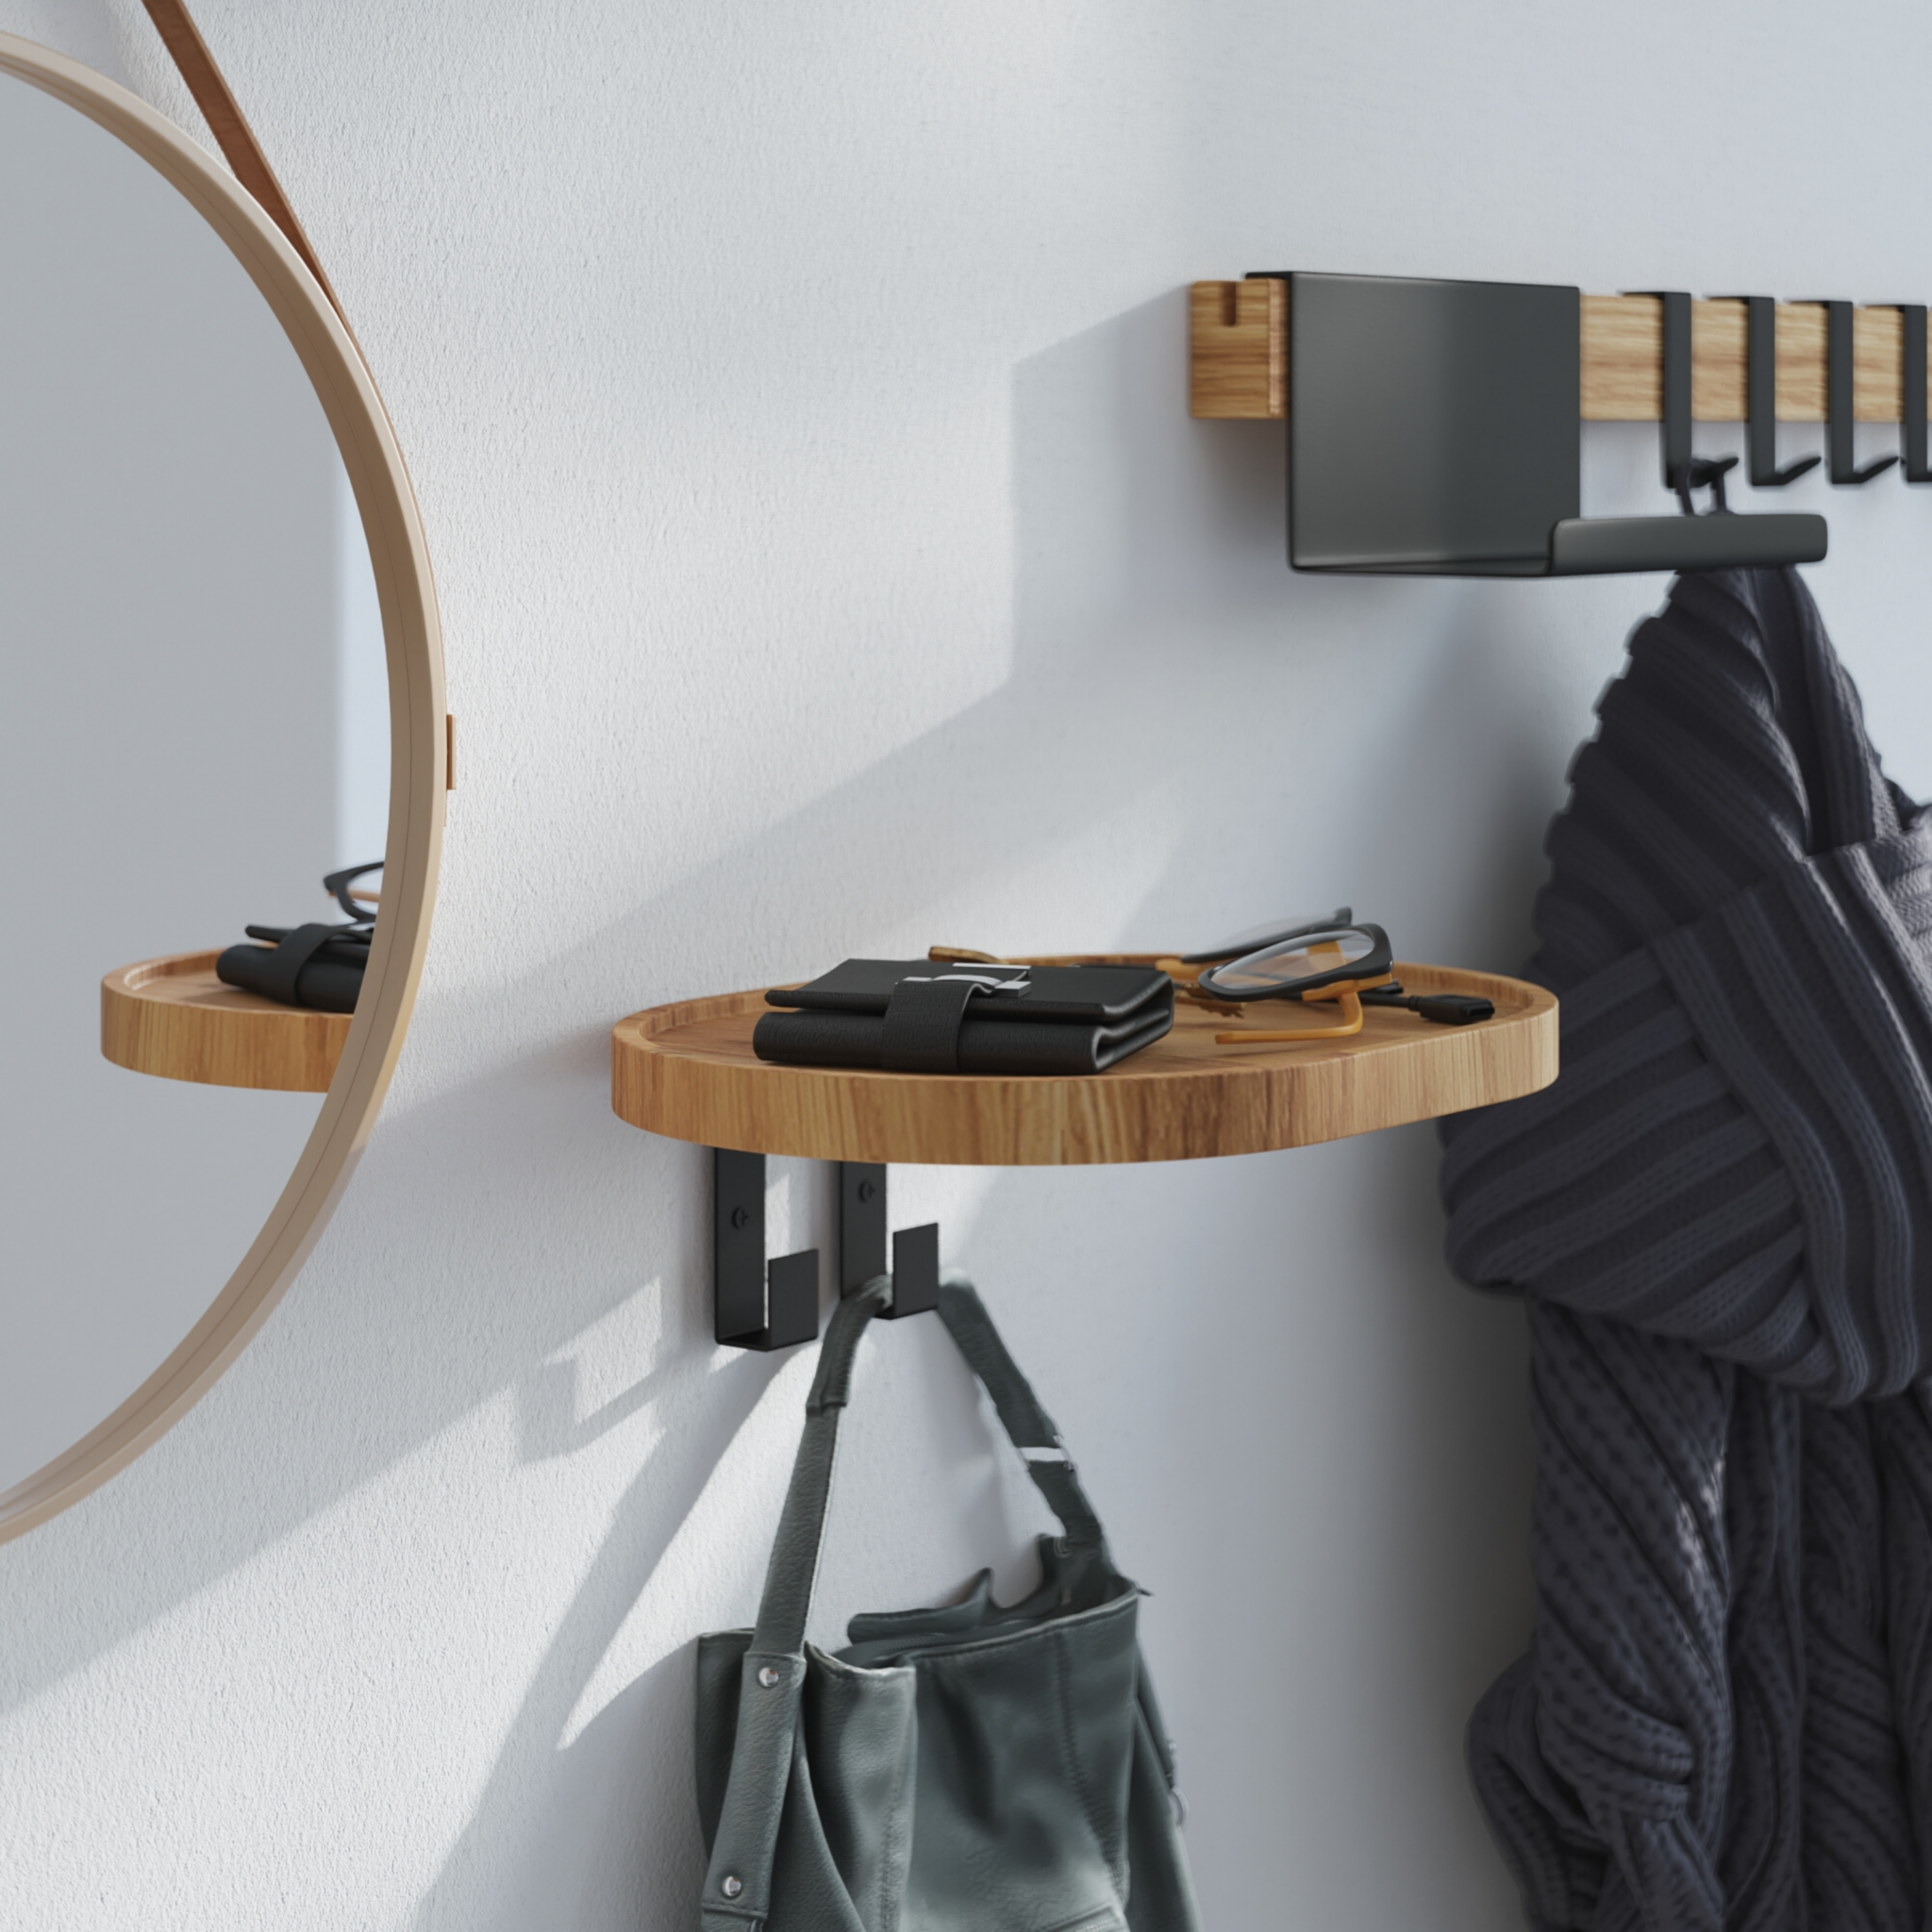 wooden coat rack, puinen naulakko, rack hat rack, naulakko hattuhylly, rack hat rack, naulakko hattuhylly, rack on the wall, naulakko seinälle, naulakko seinään, wooden rack, puunaulakko, rack hallway, naulakko eteinen, rack for the hallway, naulakko eteiseen, rack hook, naulakko koukku, design rack, design naulakko, rack wood, naulakko puu, rack made of wood, naulakko puusta, wood rack, puu naulakko, rack with the shelf, naulakko hyllyllä